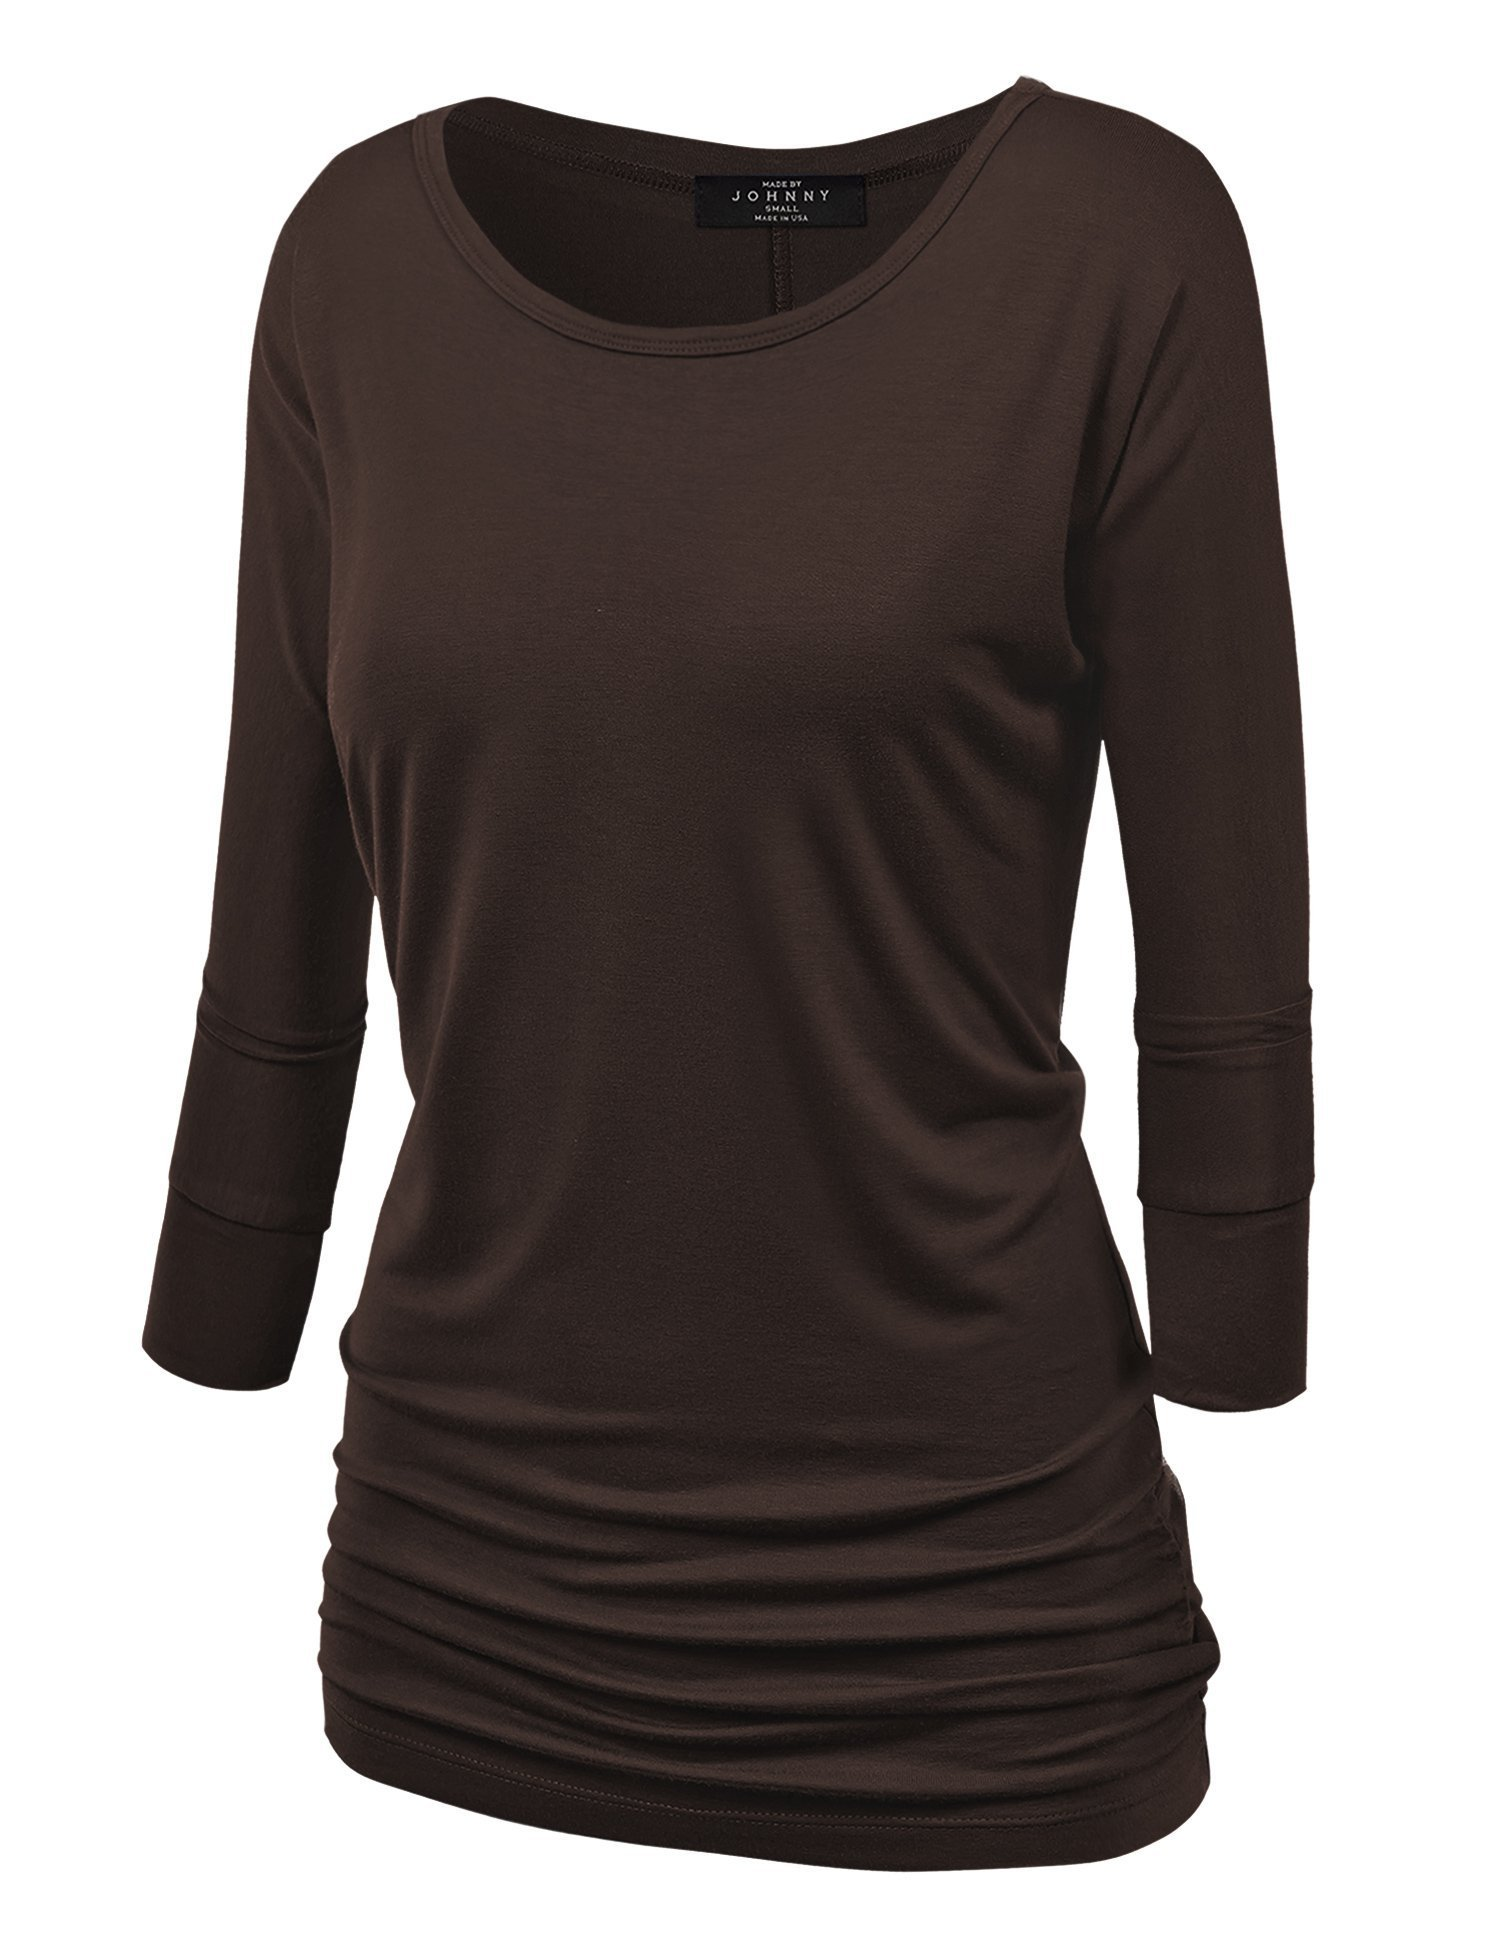 Made By Johnny WT822 Womens 3/4 Sleeve with Drape Top M Brown